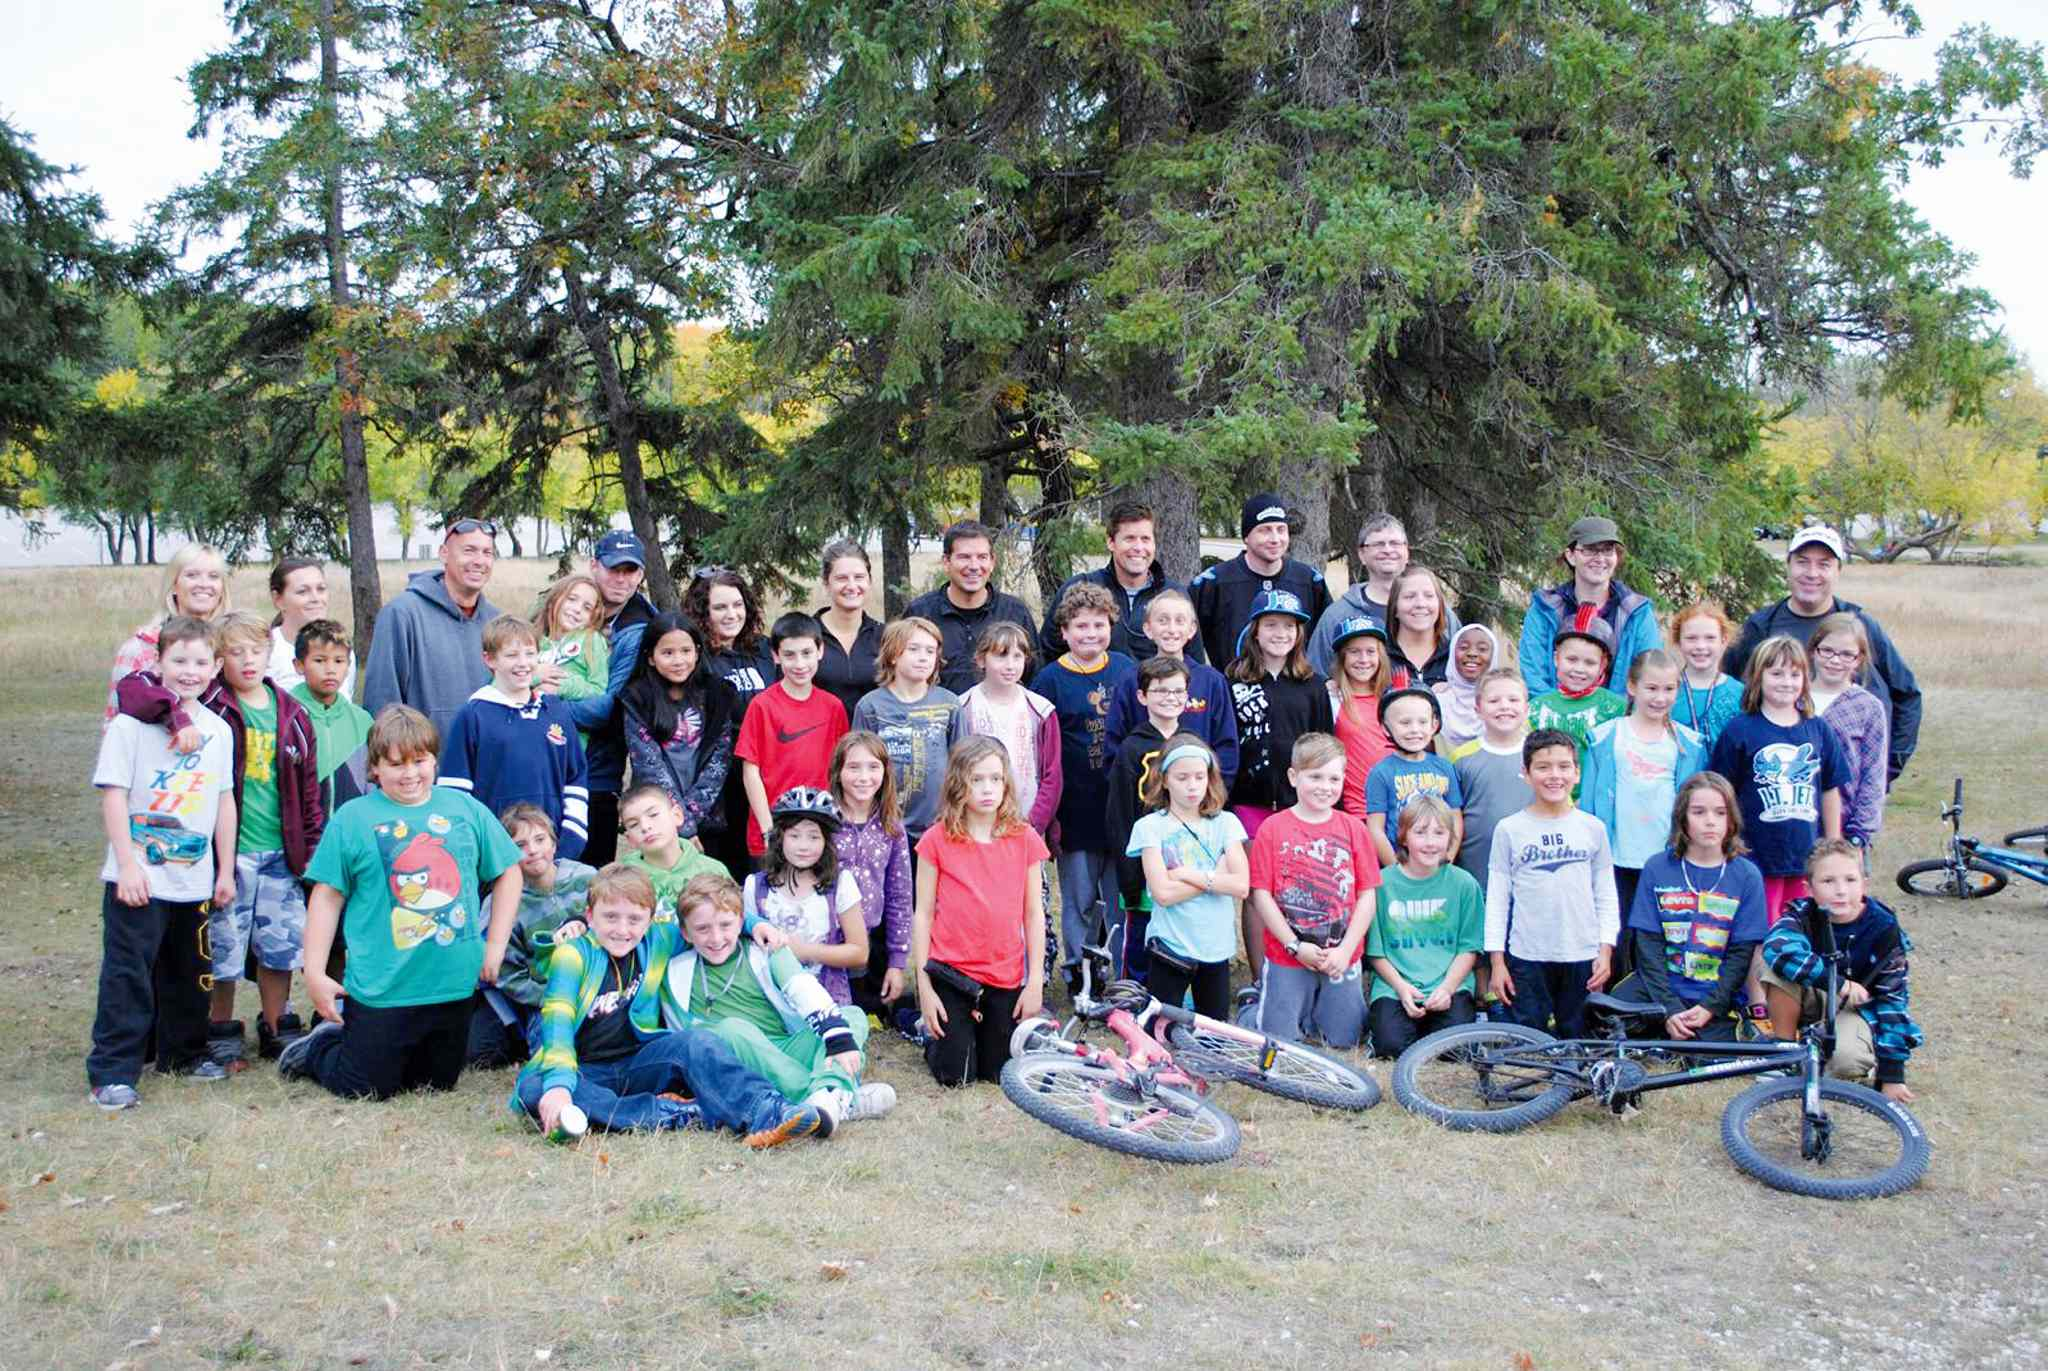 A group of 40 Grade 4 and 5 students from Joseph Teres School's mountain bike club embarked on the 25km ride from the school to Birds Hill Park on Sept. 27. The trip was the 25th for club organizer and gym teacher David Markham.